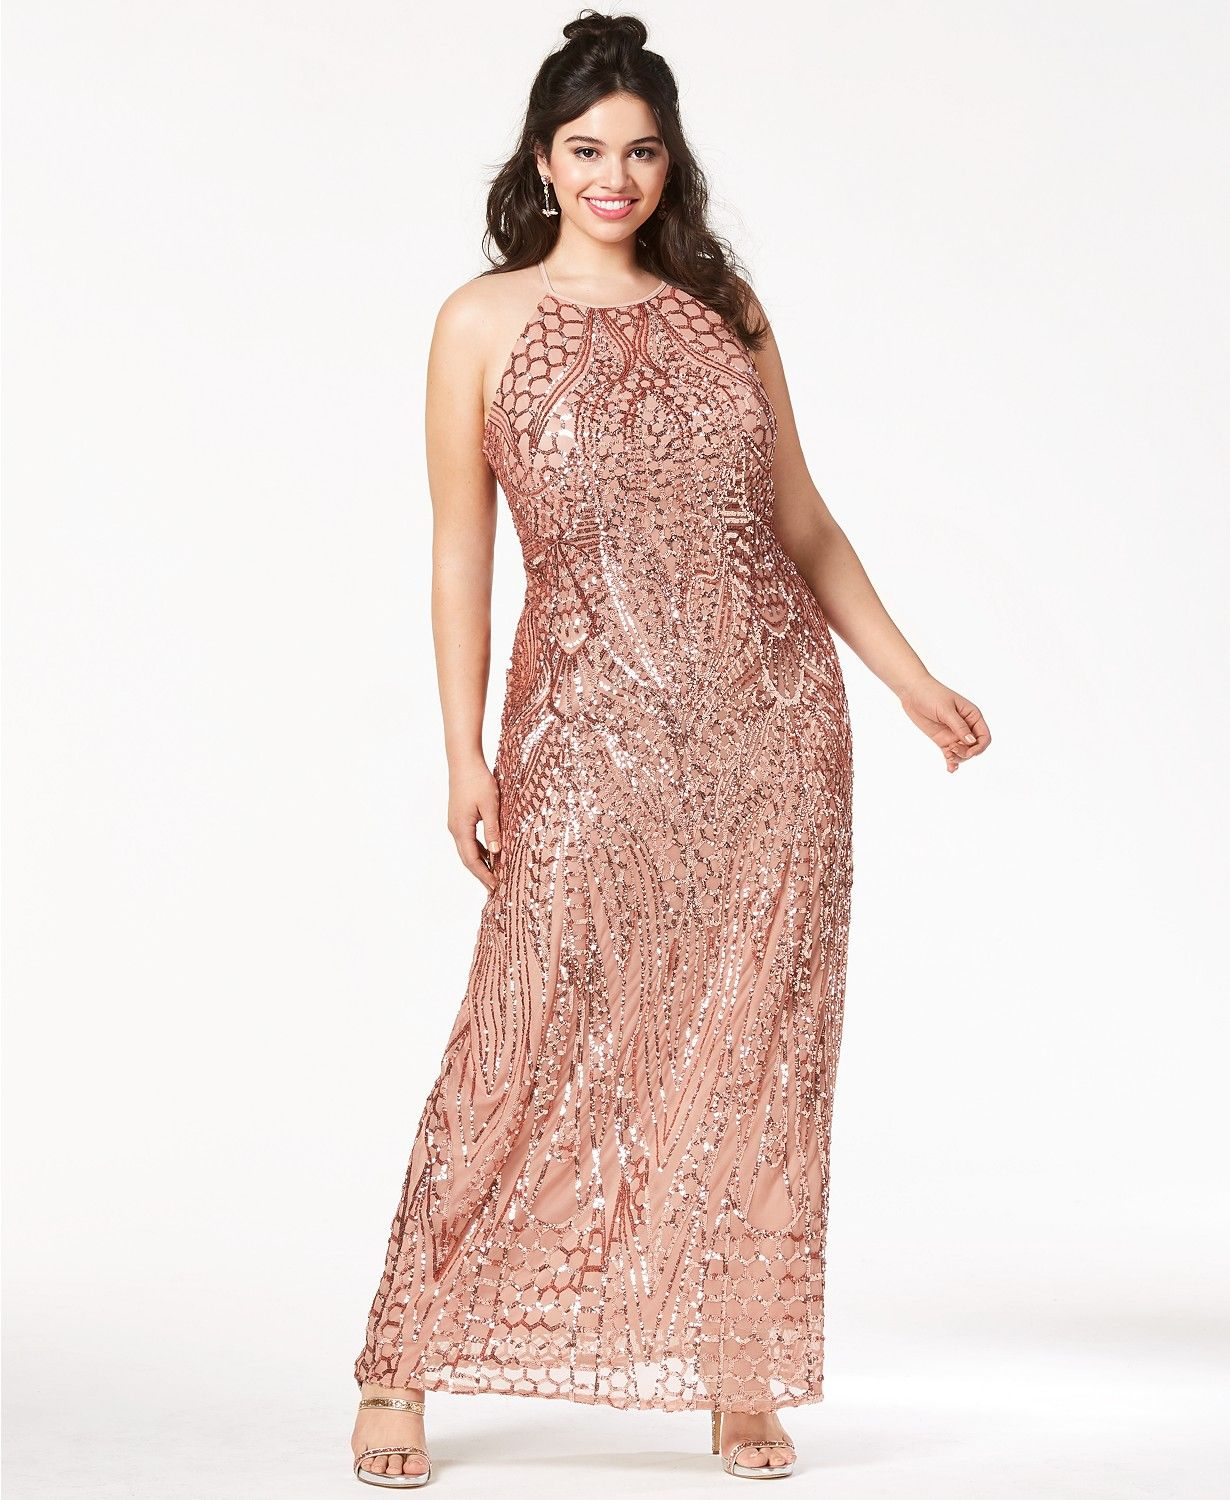 acfa023c1f9 Morgan & Company Trendy Plus Size Sequin-Patterned Backless Gown in ...